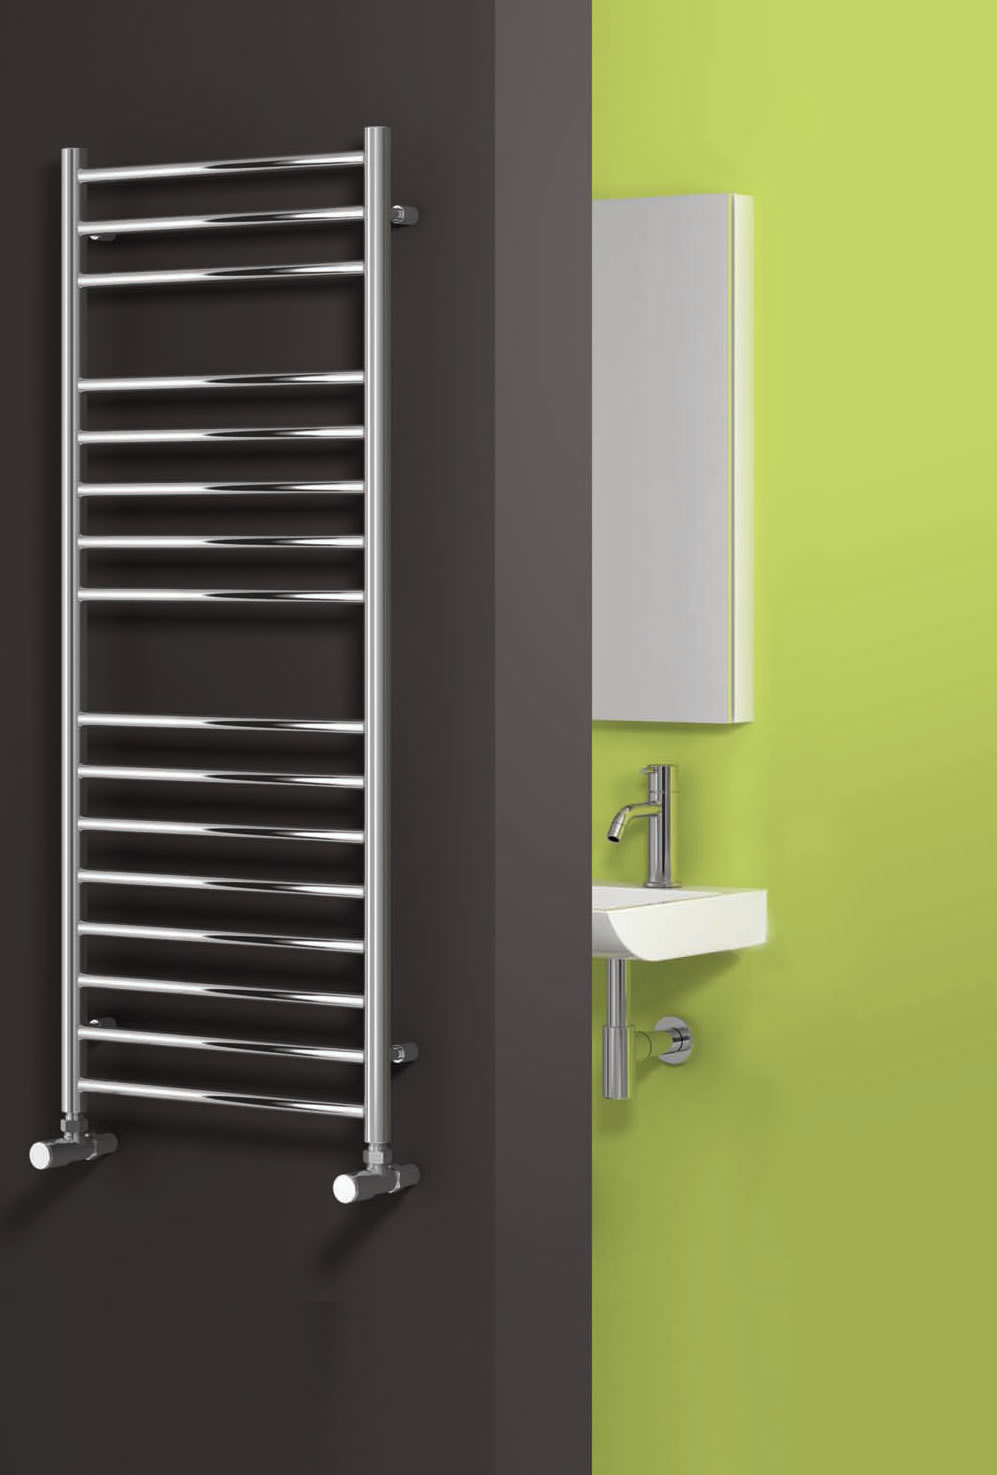 Reina Luna 600 X 300 Stainless Steel Modern Vertical Bathroom Towel Rail and Radiator